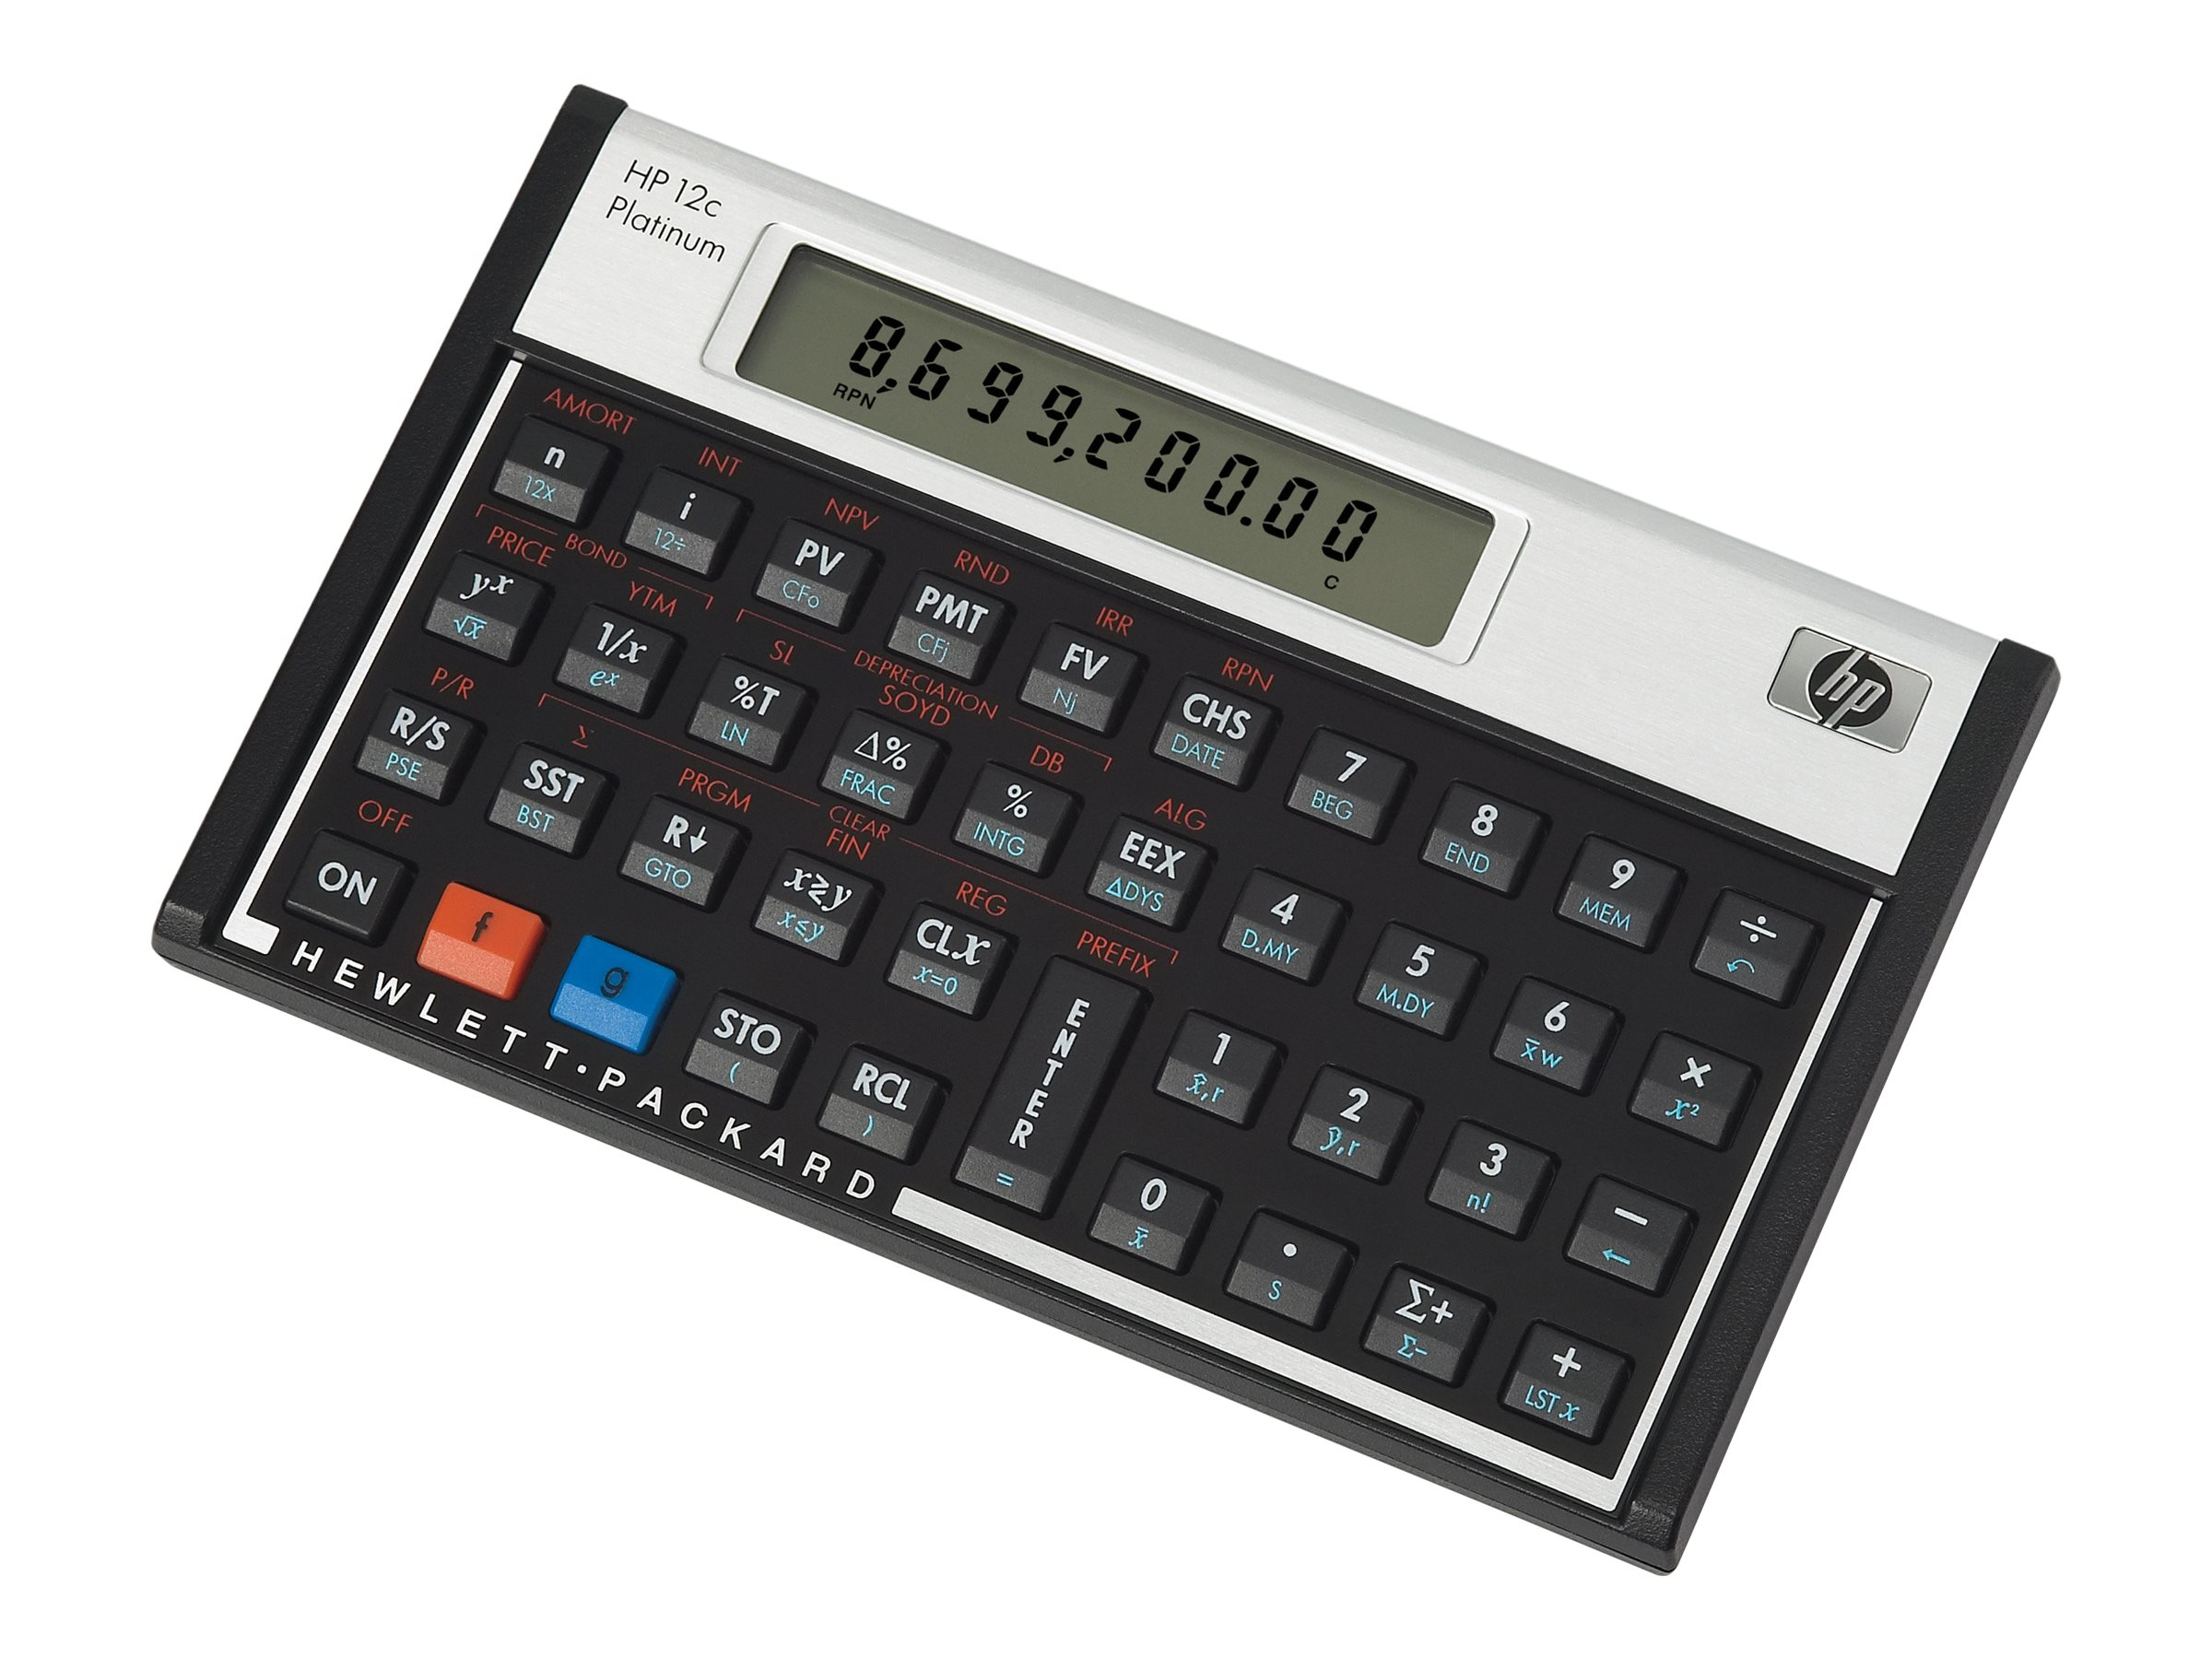 HP HP 12C Platinum Financial Calculator